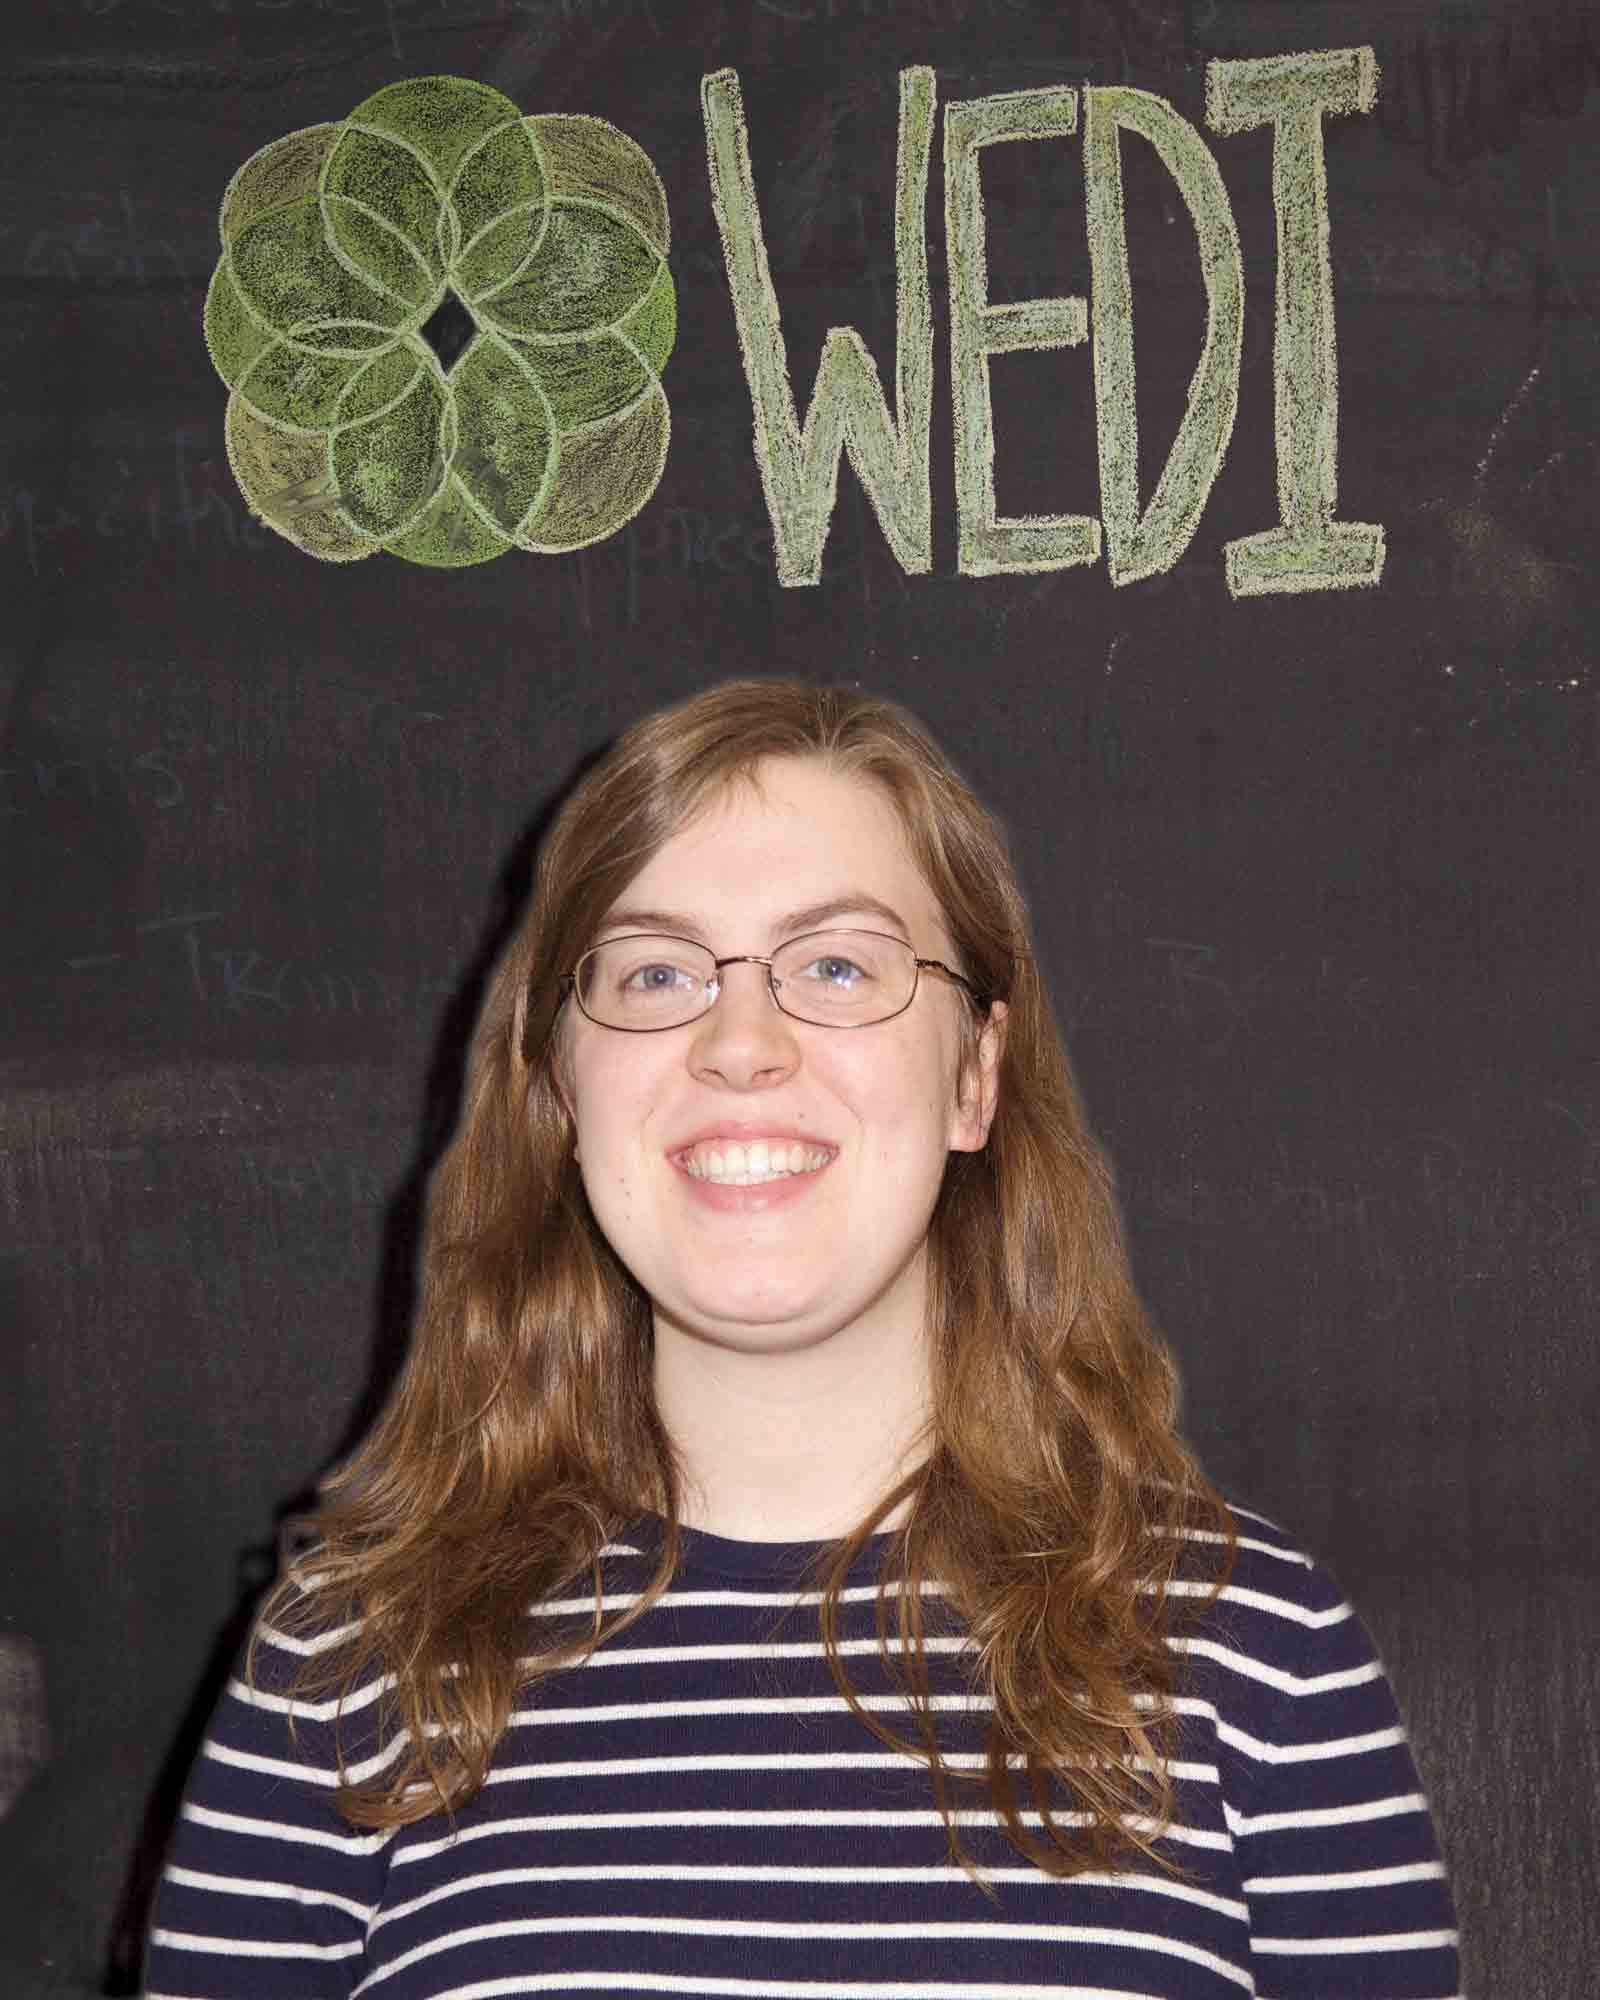 Raisa Dibble graduated with a B.S. in Accounting from Houghton College in May 2017. During her time at Houghton, she interned with accounting and finance departments at several non-profits and volunteered with the VITA program preparing taxes for low-to-moderate income people. Raisa was drawn to WEDI because she believes that starting small businesses can be one of the most empowering experiences for a person and also one of the most sustainable forms of community development.